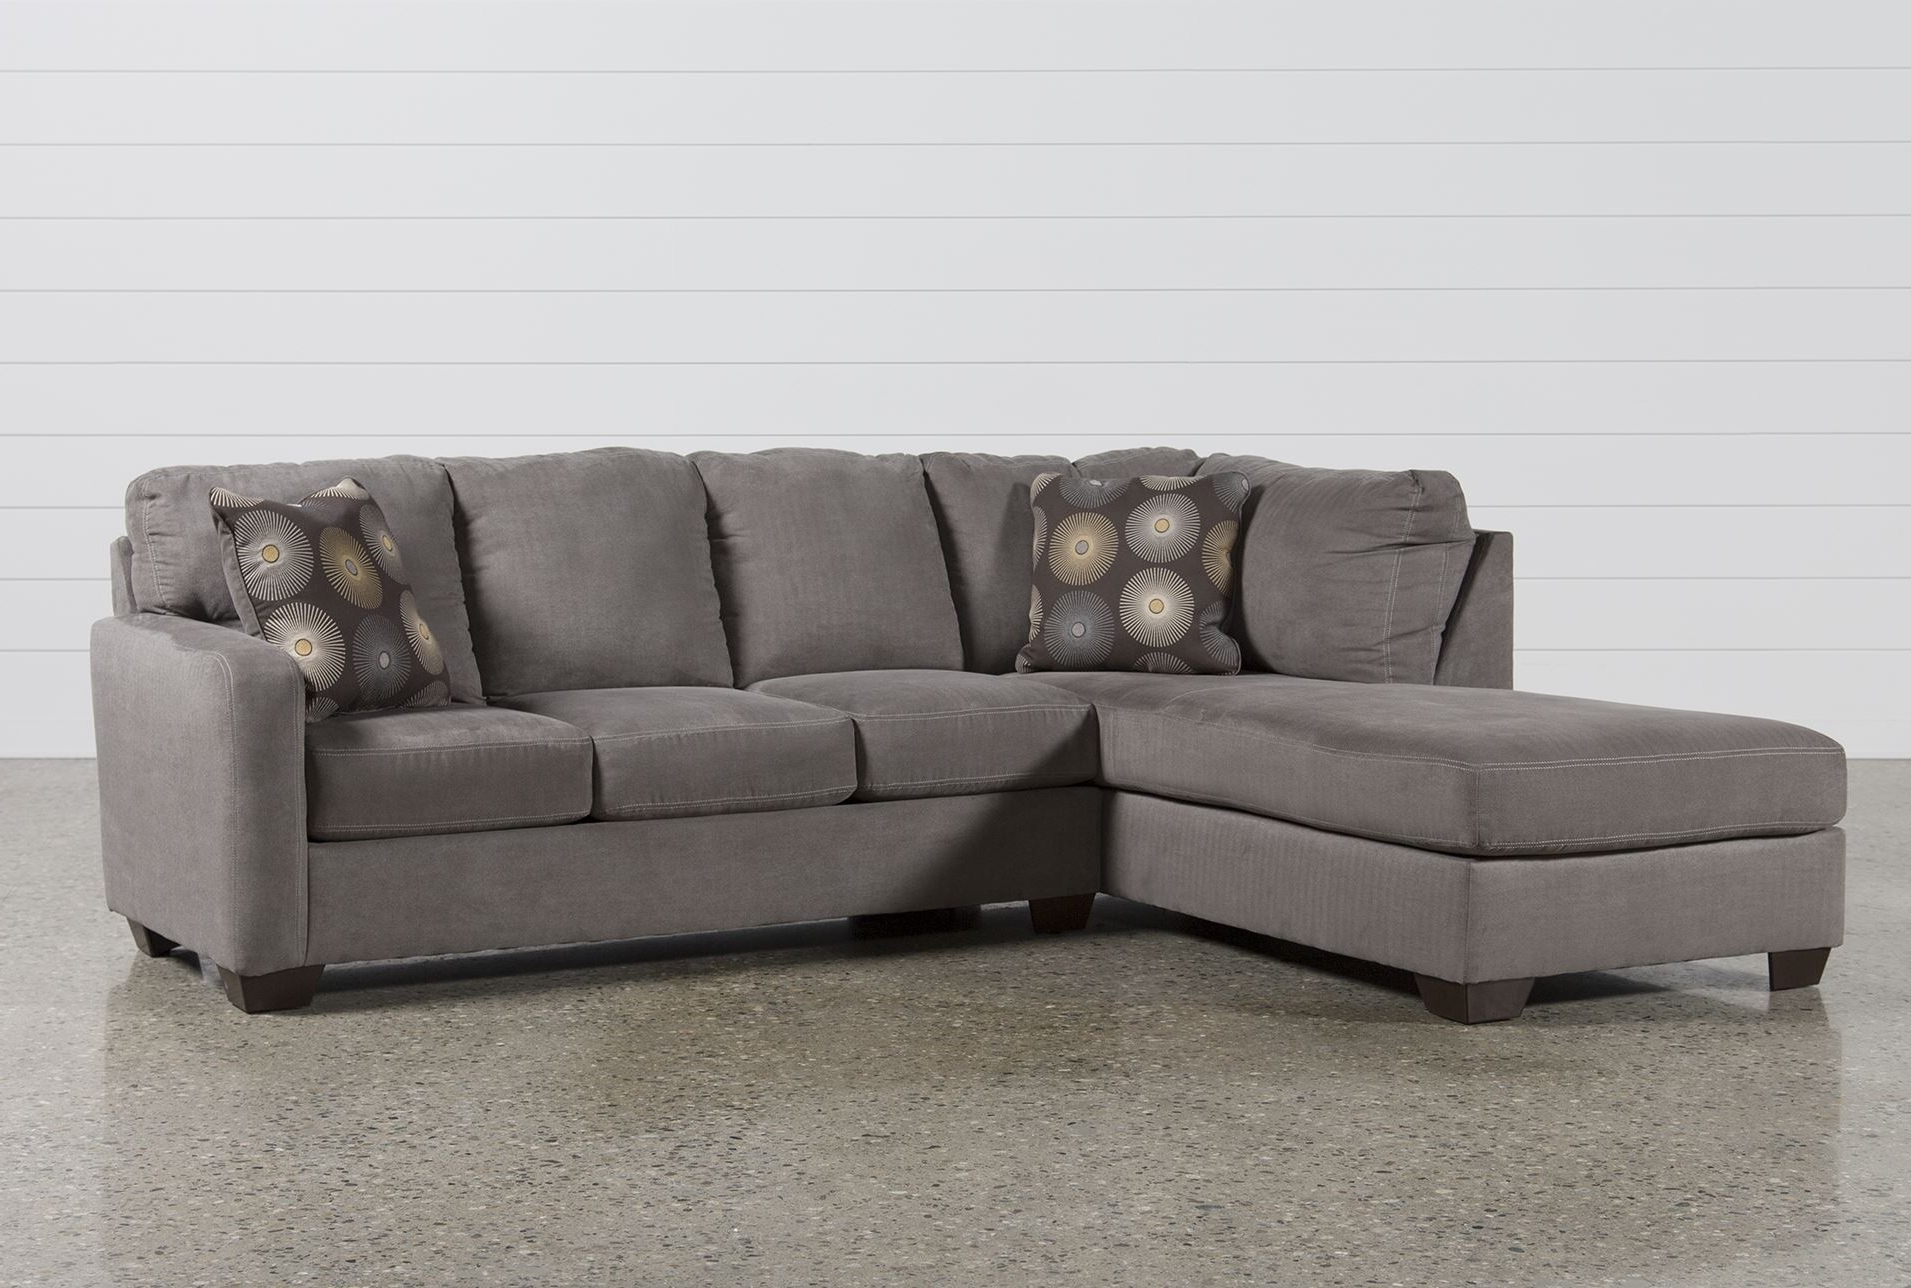 2018 Sofa ~ Luxury Leather Sofa With Chaise Lounge Cute Small Sectional Intended For Gray Sectionals With Chaise (View 2 of 15)